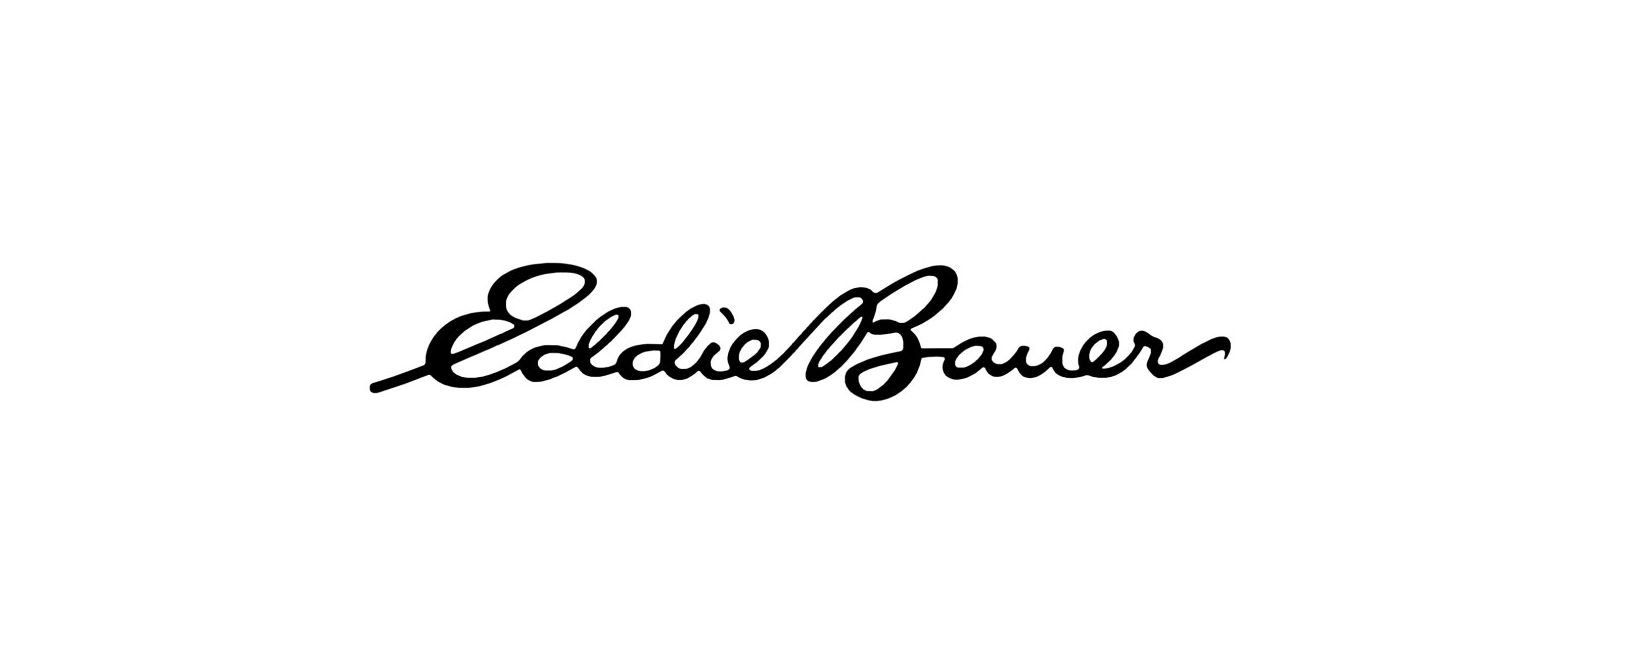 Eddie Bauer Review & Coupon Code - Fashion of Adventure